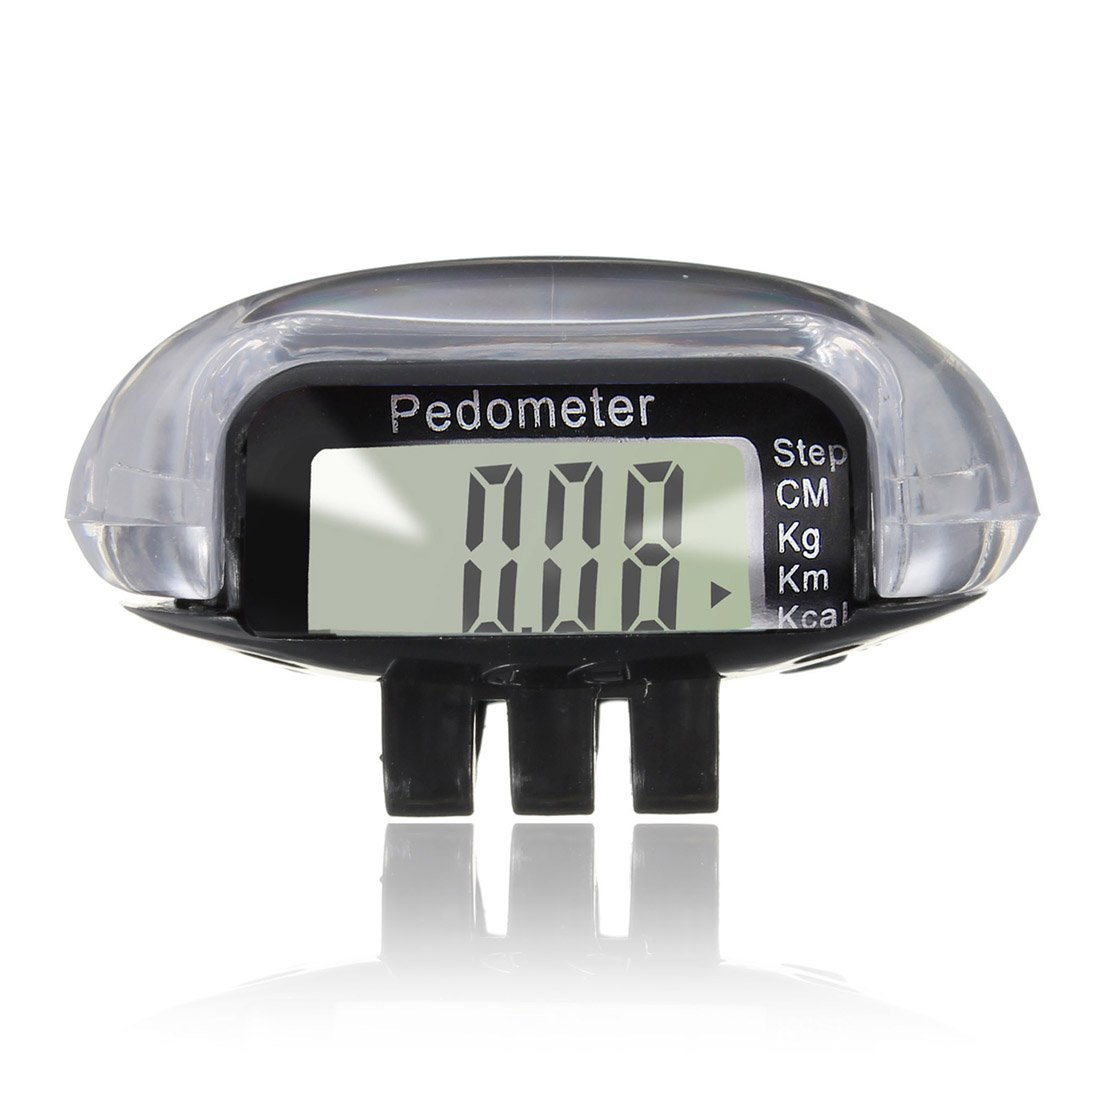 LCD Digital Multi Pedometer Walking Step Distance Calorie Counter Run Fitness - Black